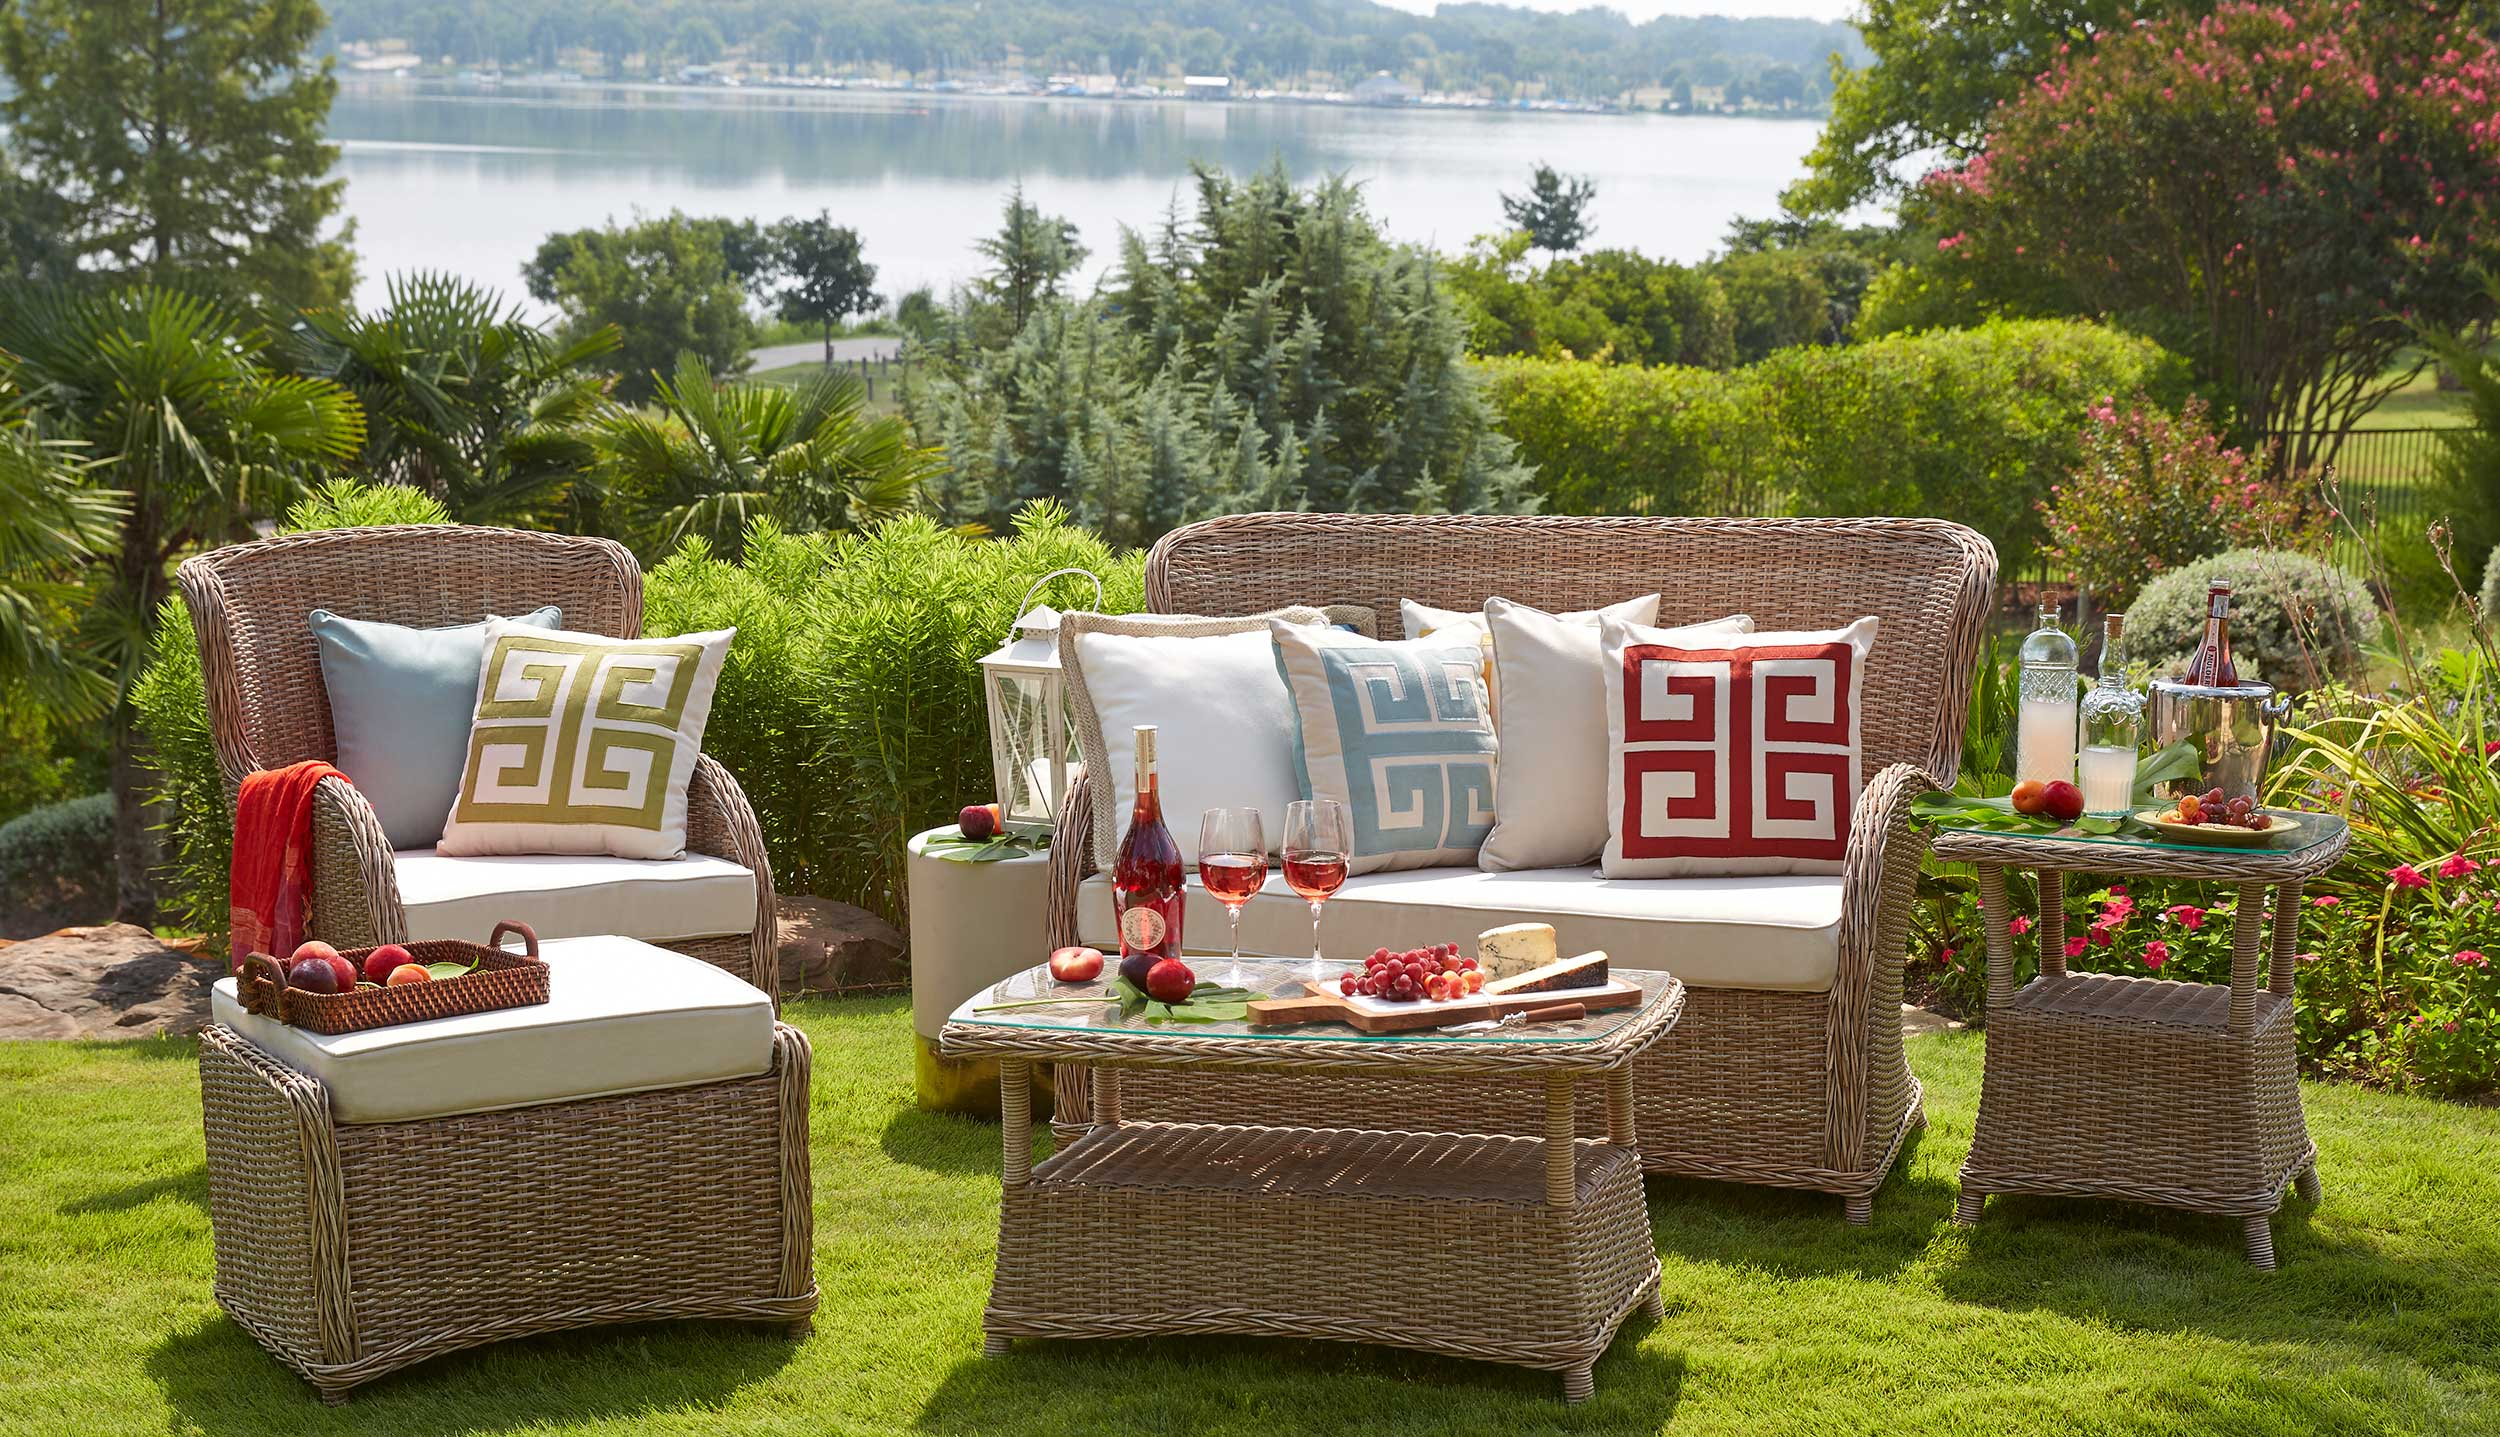 Capella_Island_Seating_PKG_07_31_14